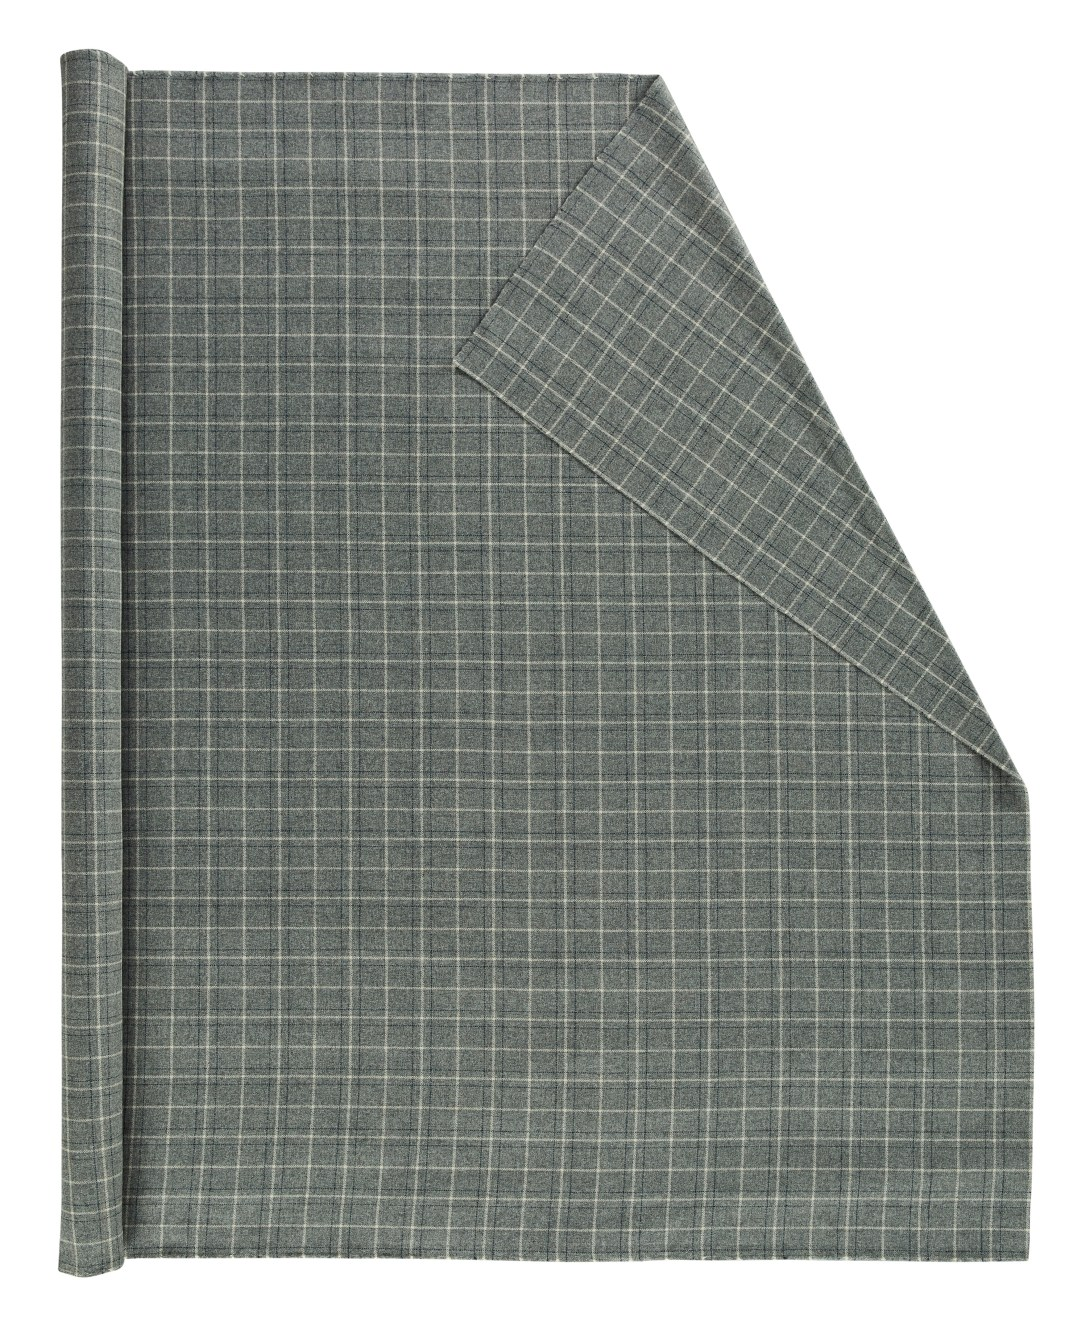 LW Grey Windowpane 126140